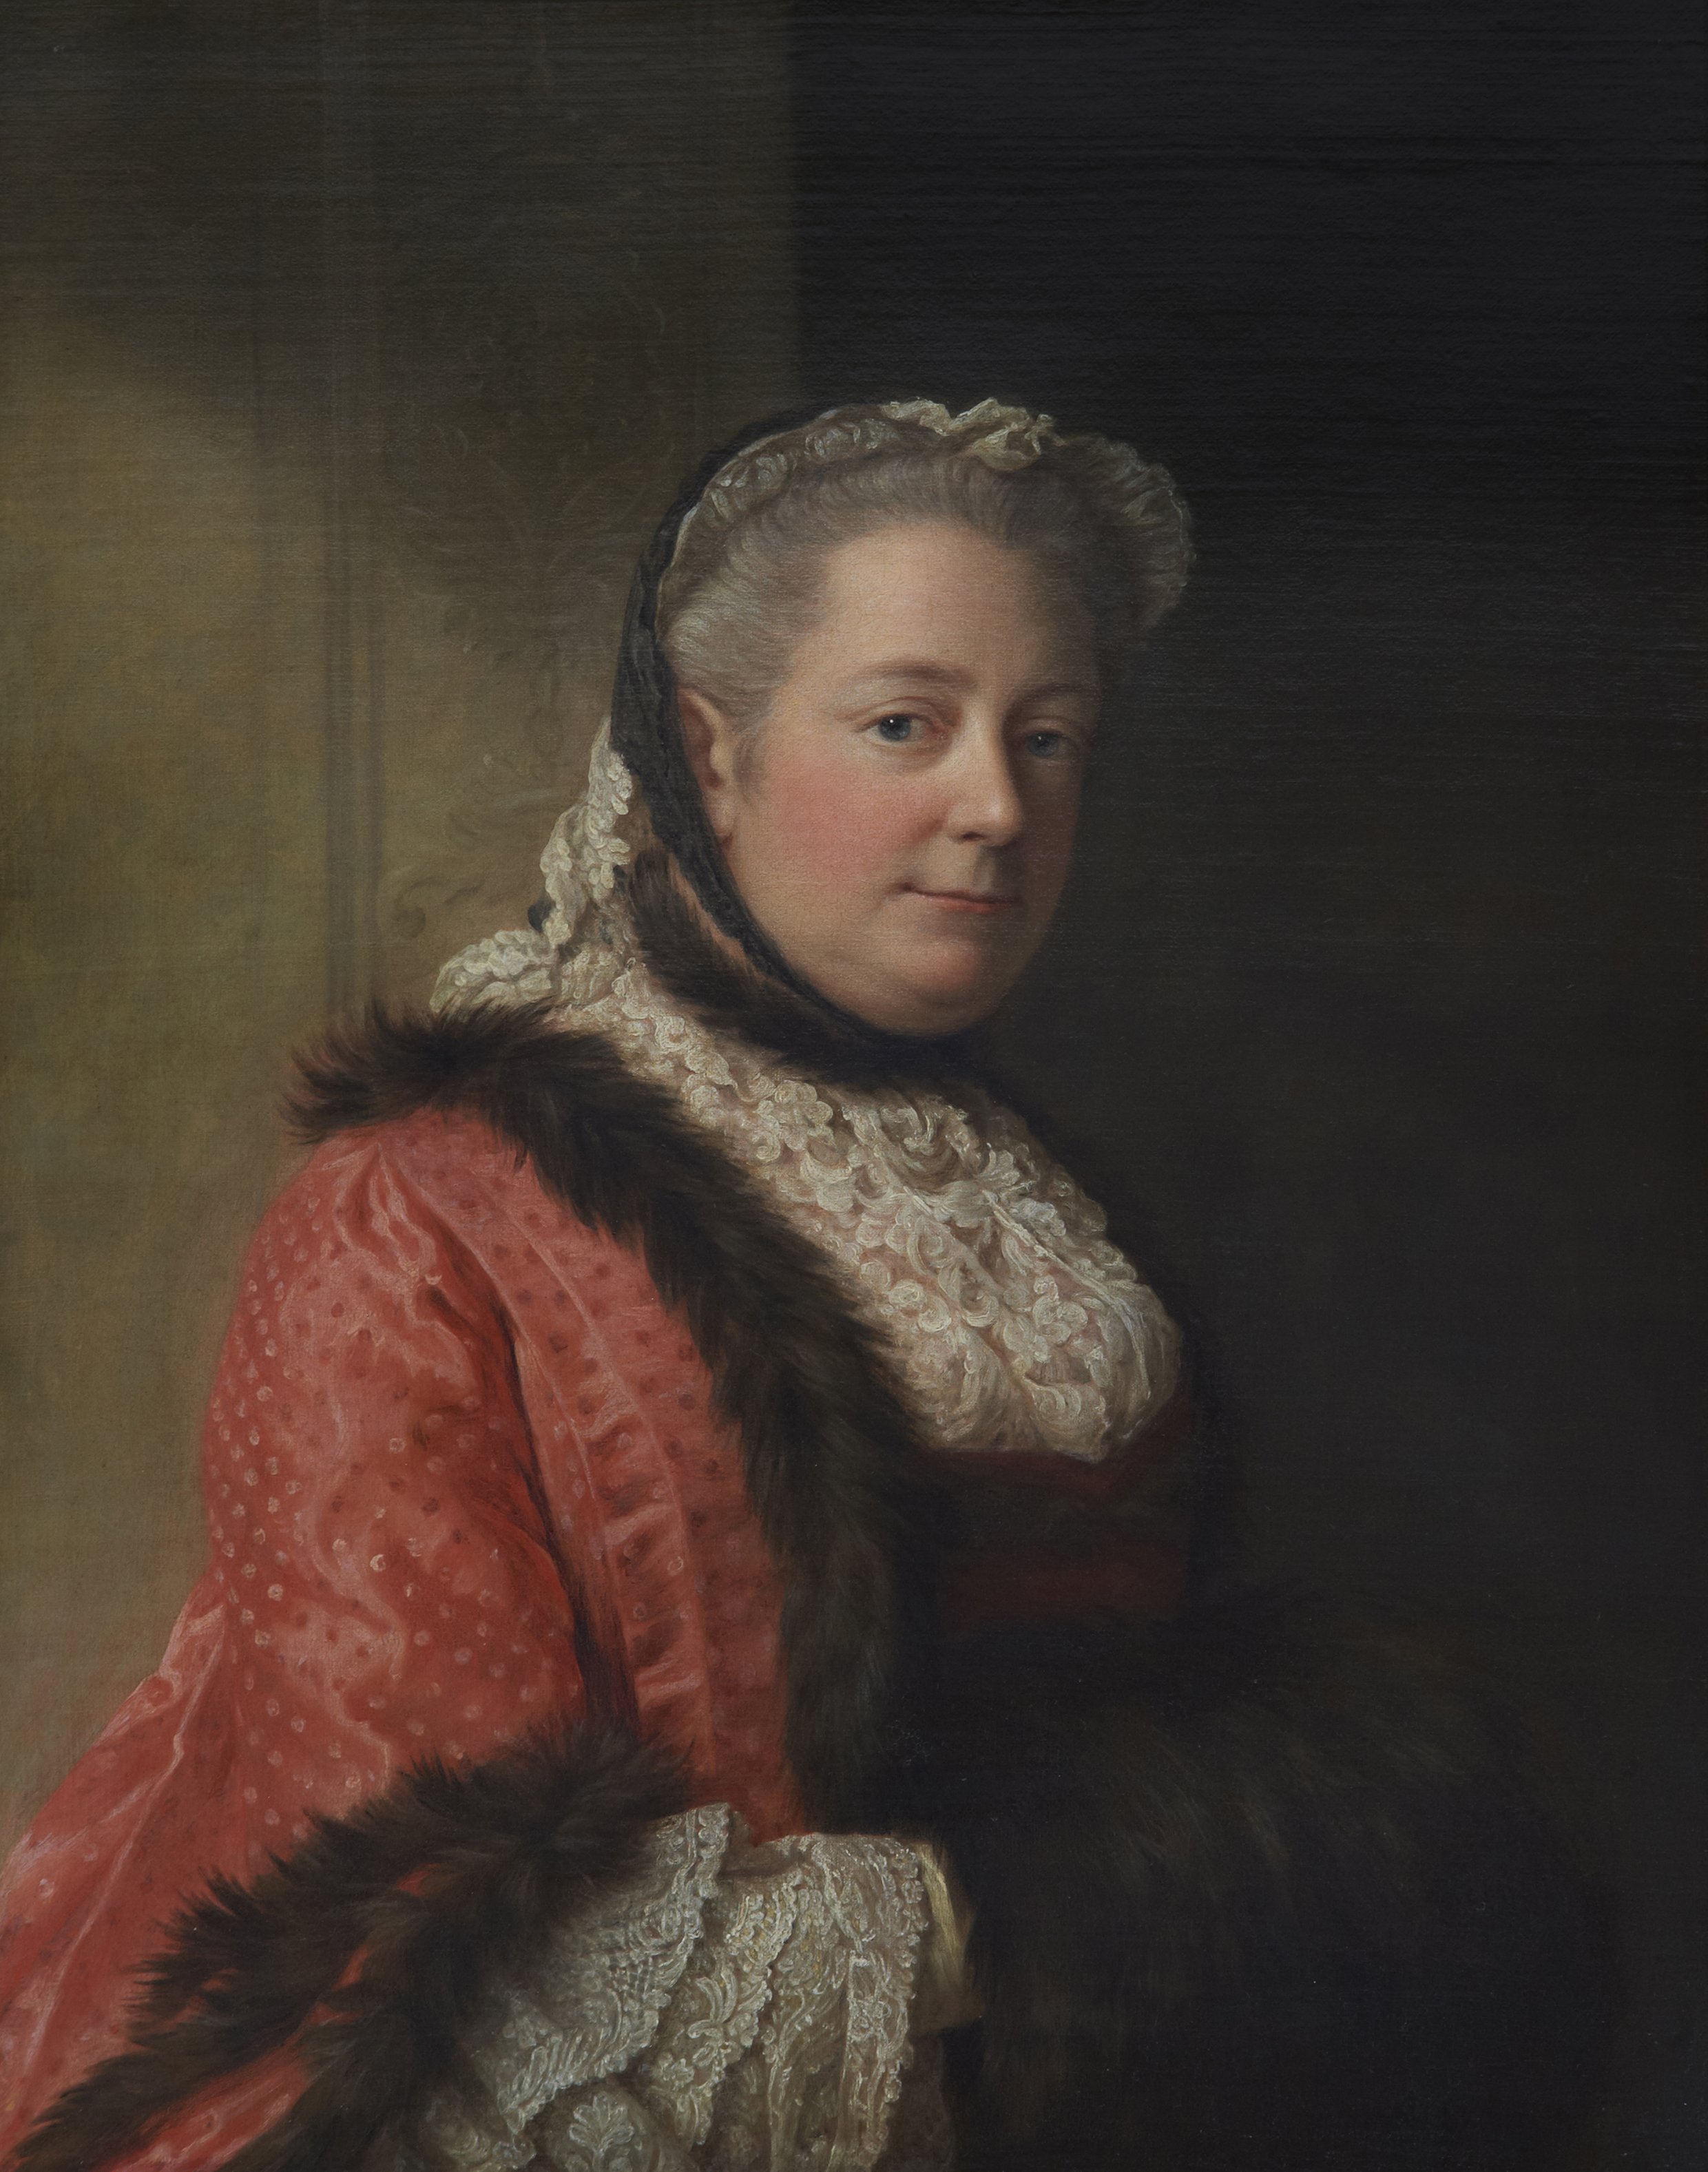 Lady Mary Hervey by Allan Ramsay, 1762. © Private Collection/Roddy Paine Studios